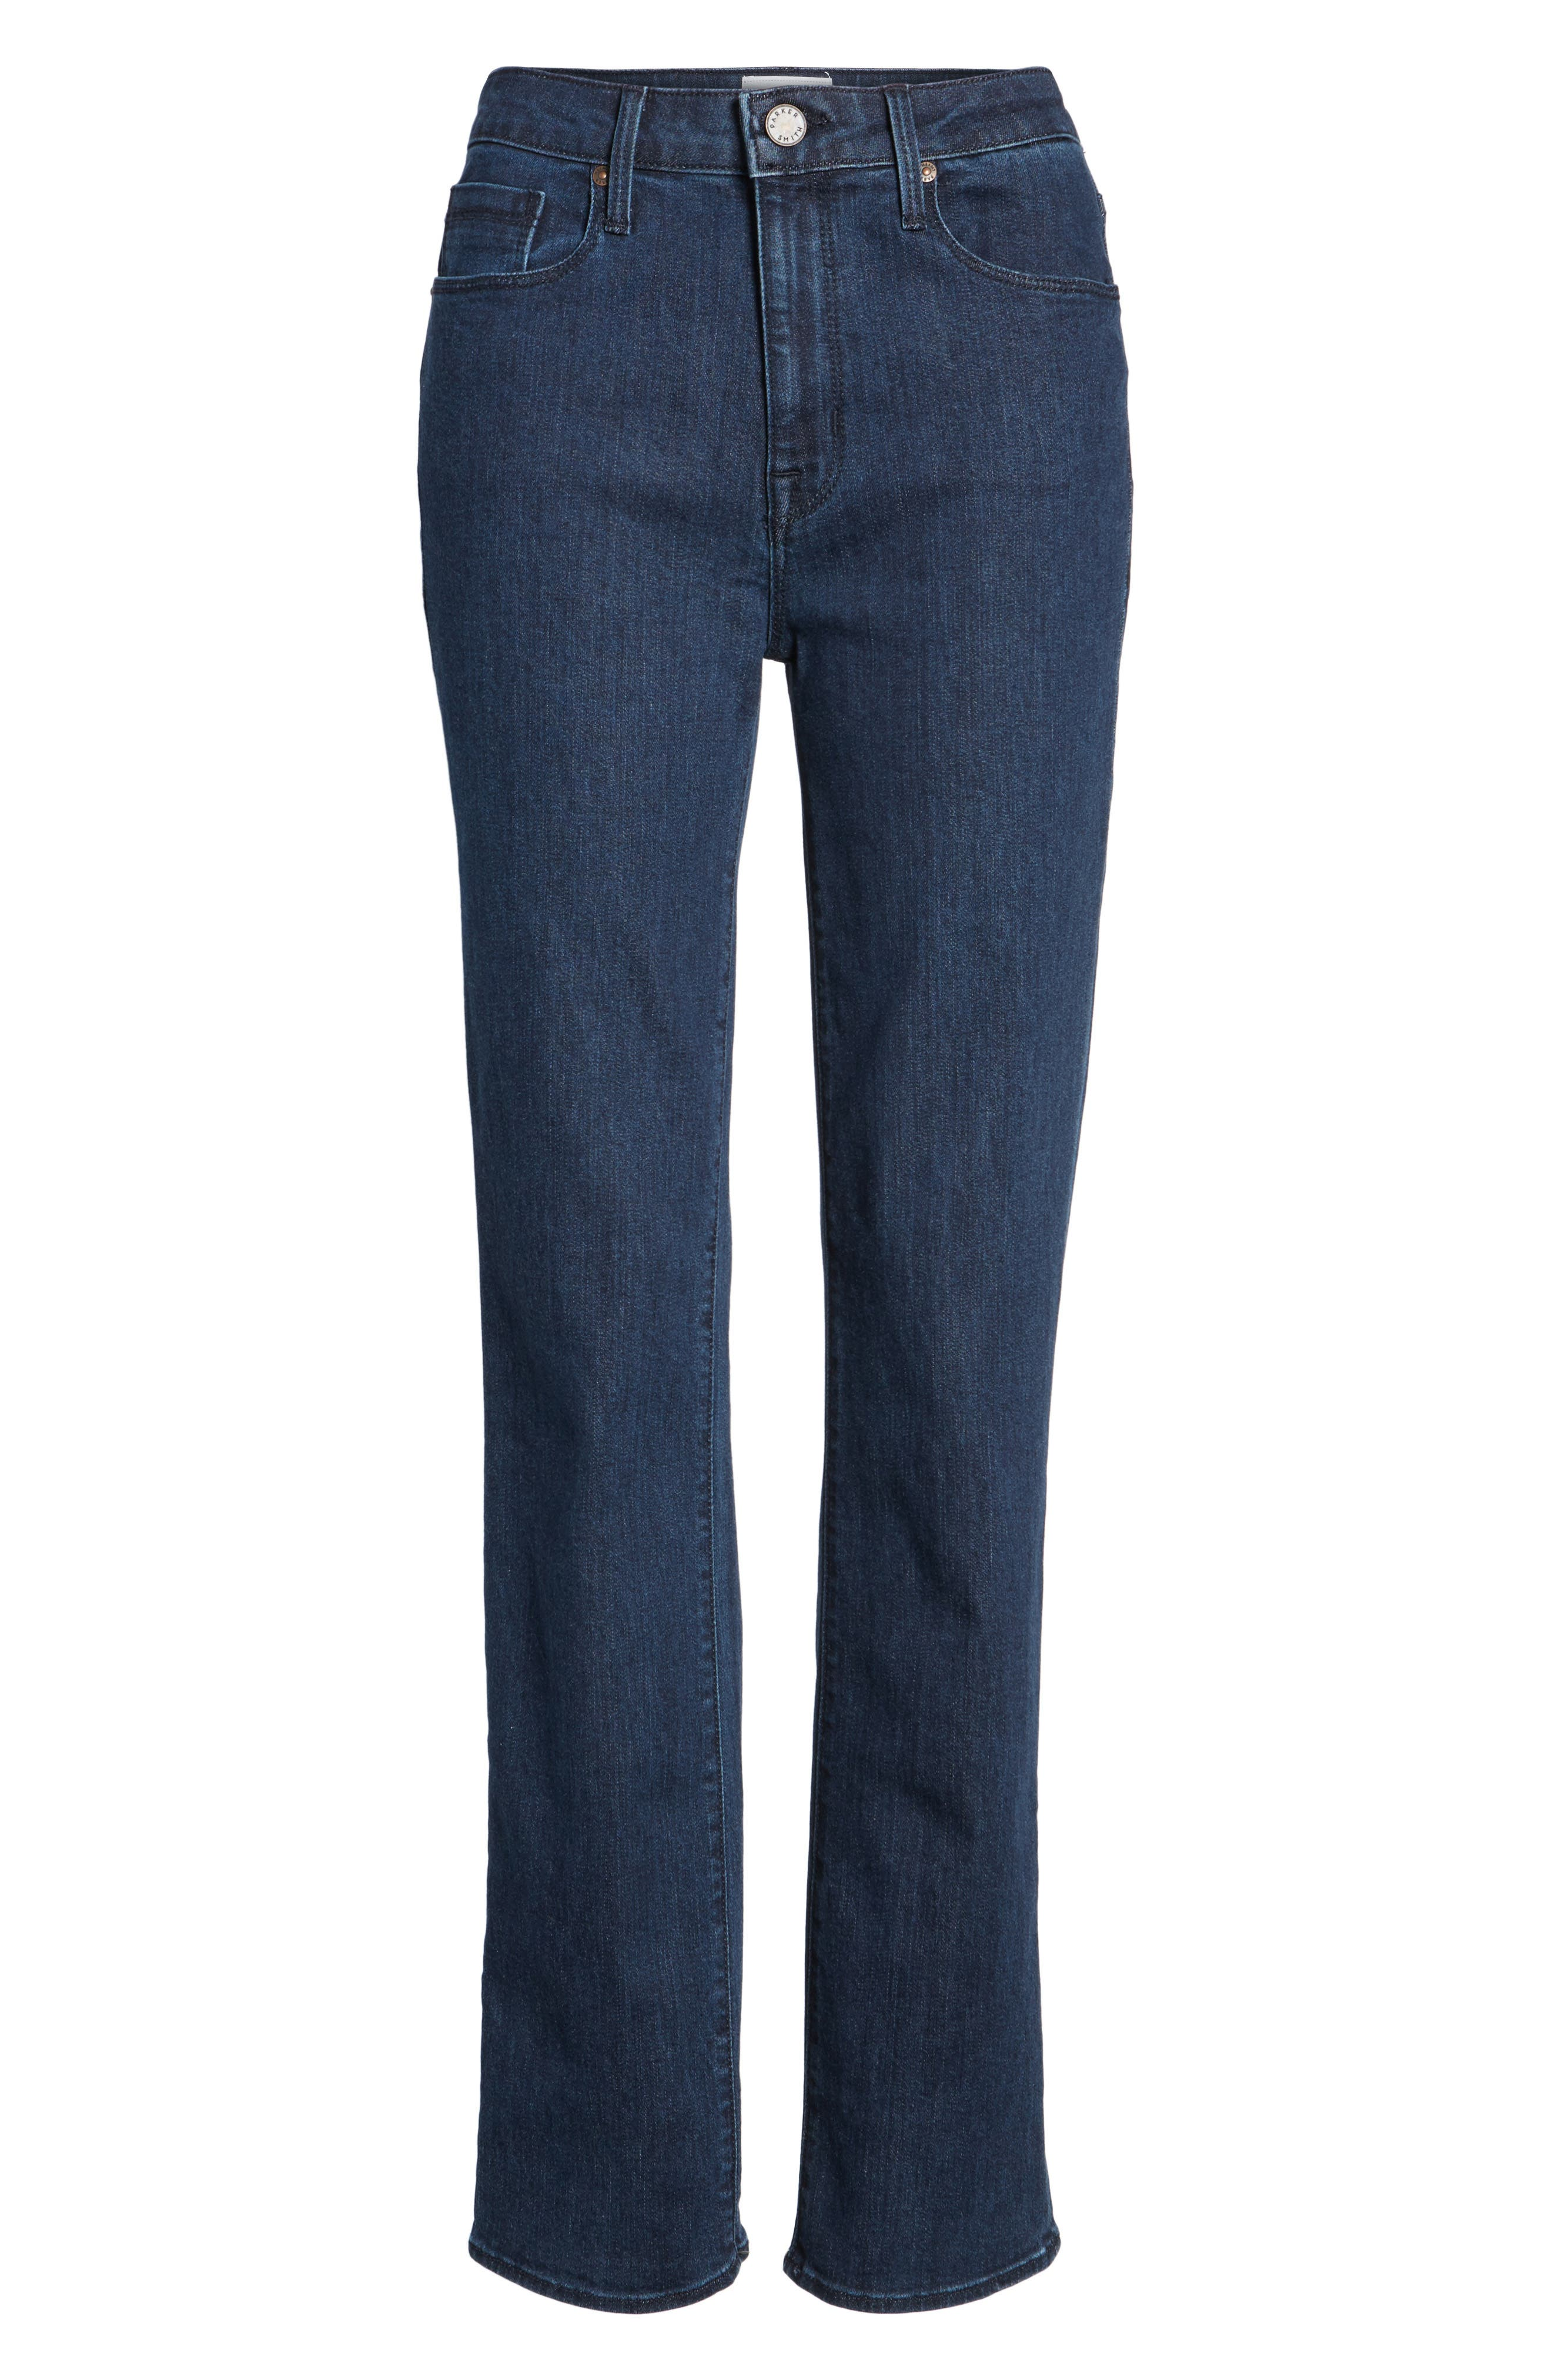 Bombshell Runaround Straight Leg Jeans,                             Alternate thumbnail 6, color,                             405